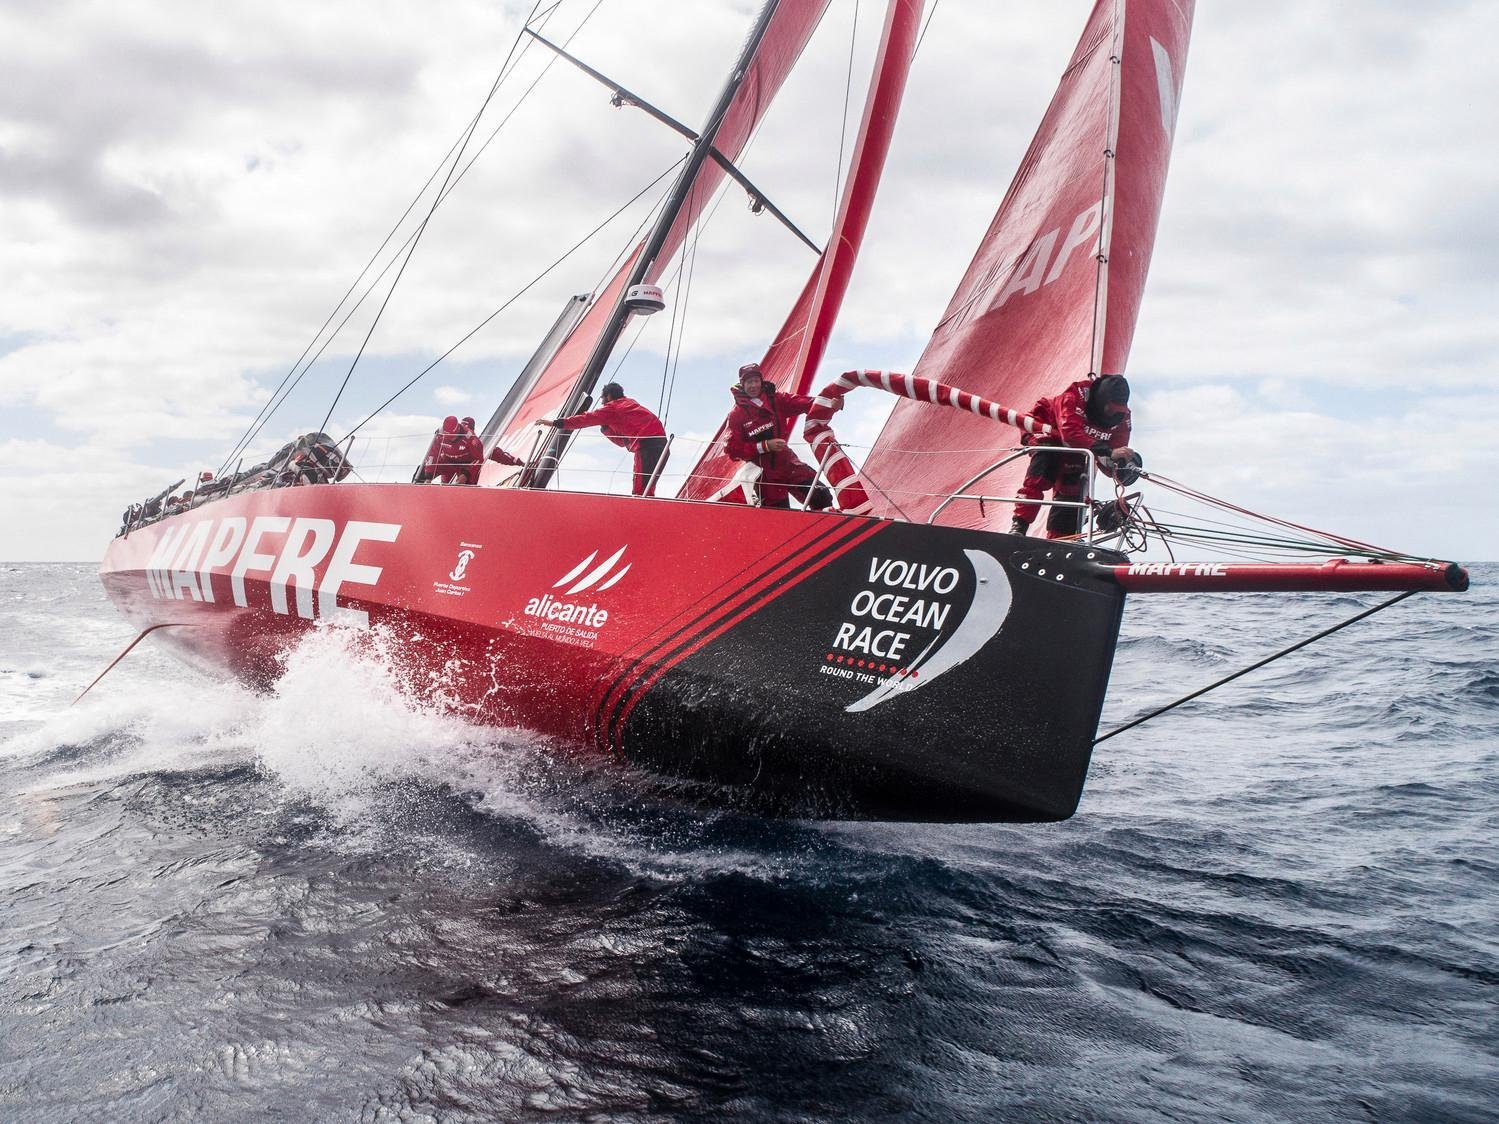 Supporting Let's Do it Global Volvo Ocean Race